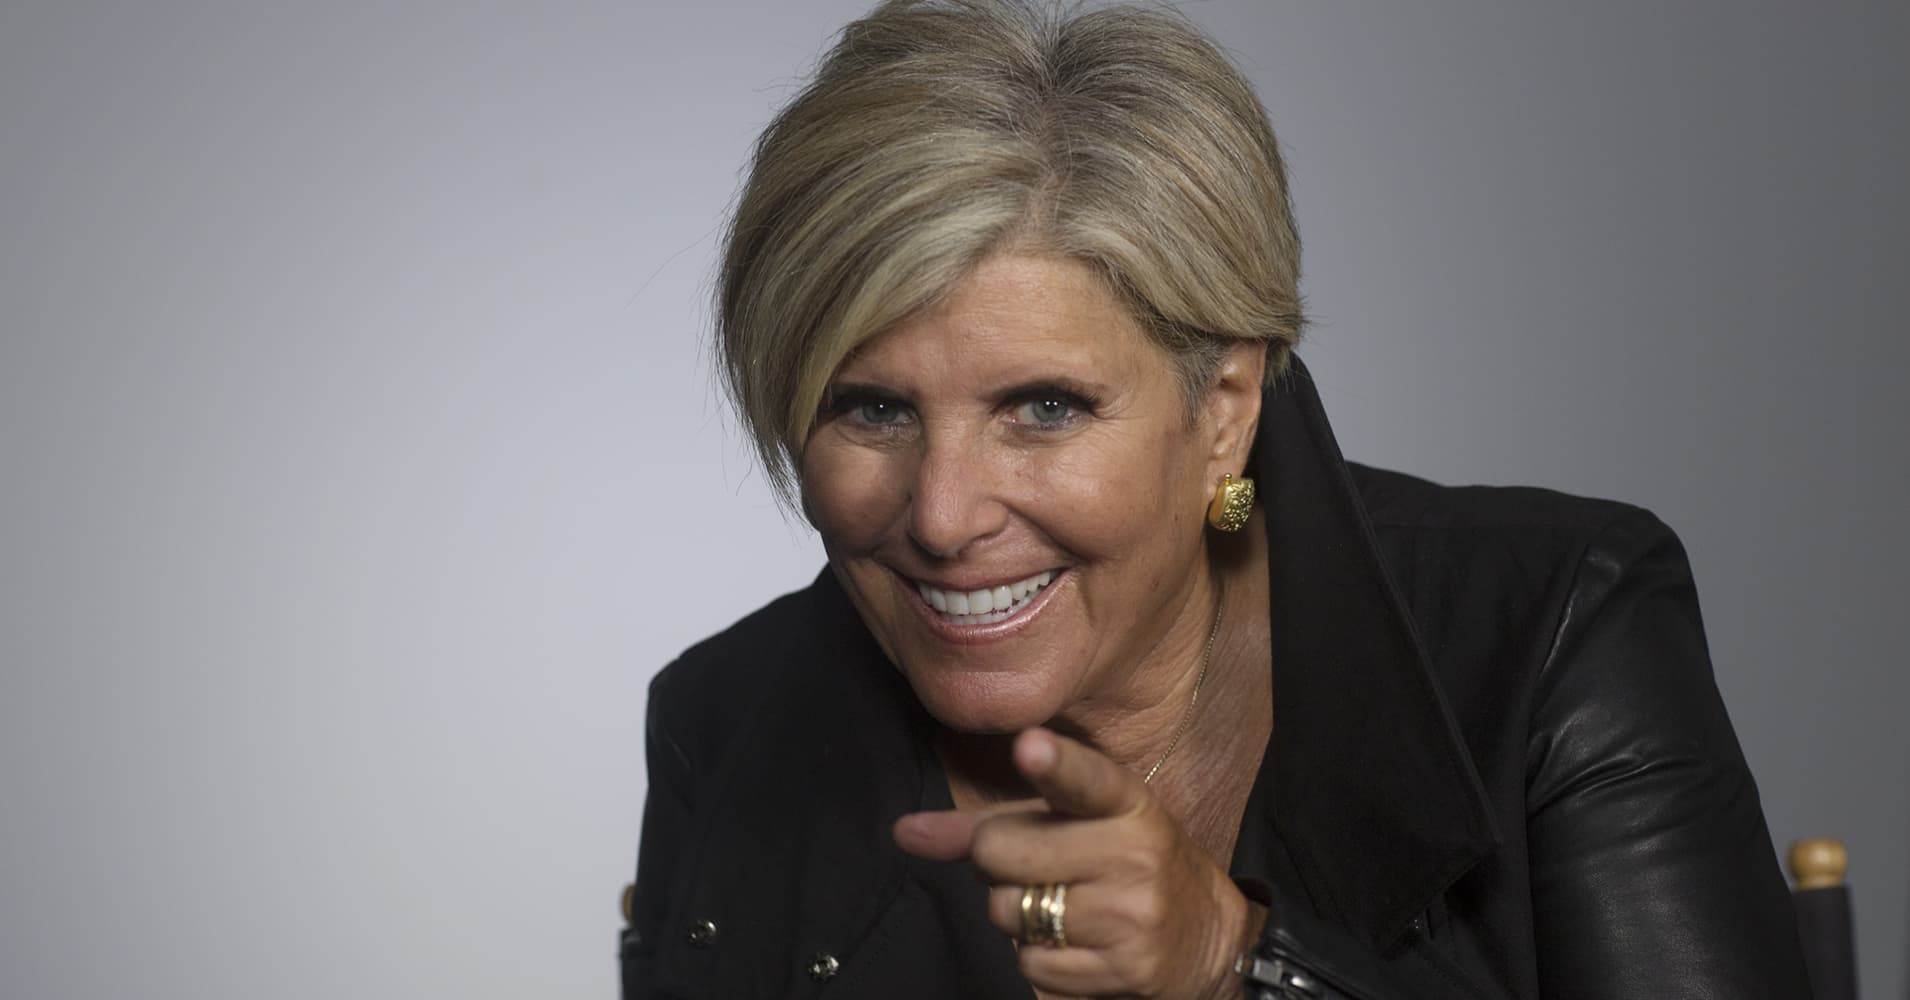 Louise Hay, FREE Video Series with Suze Orman